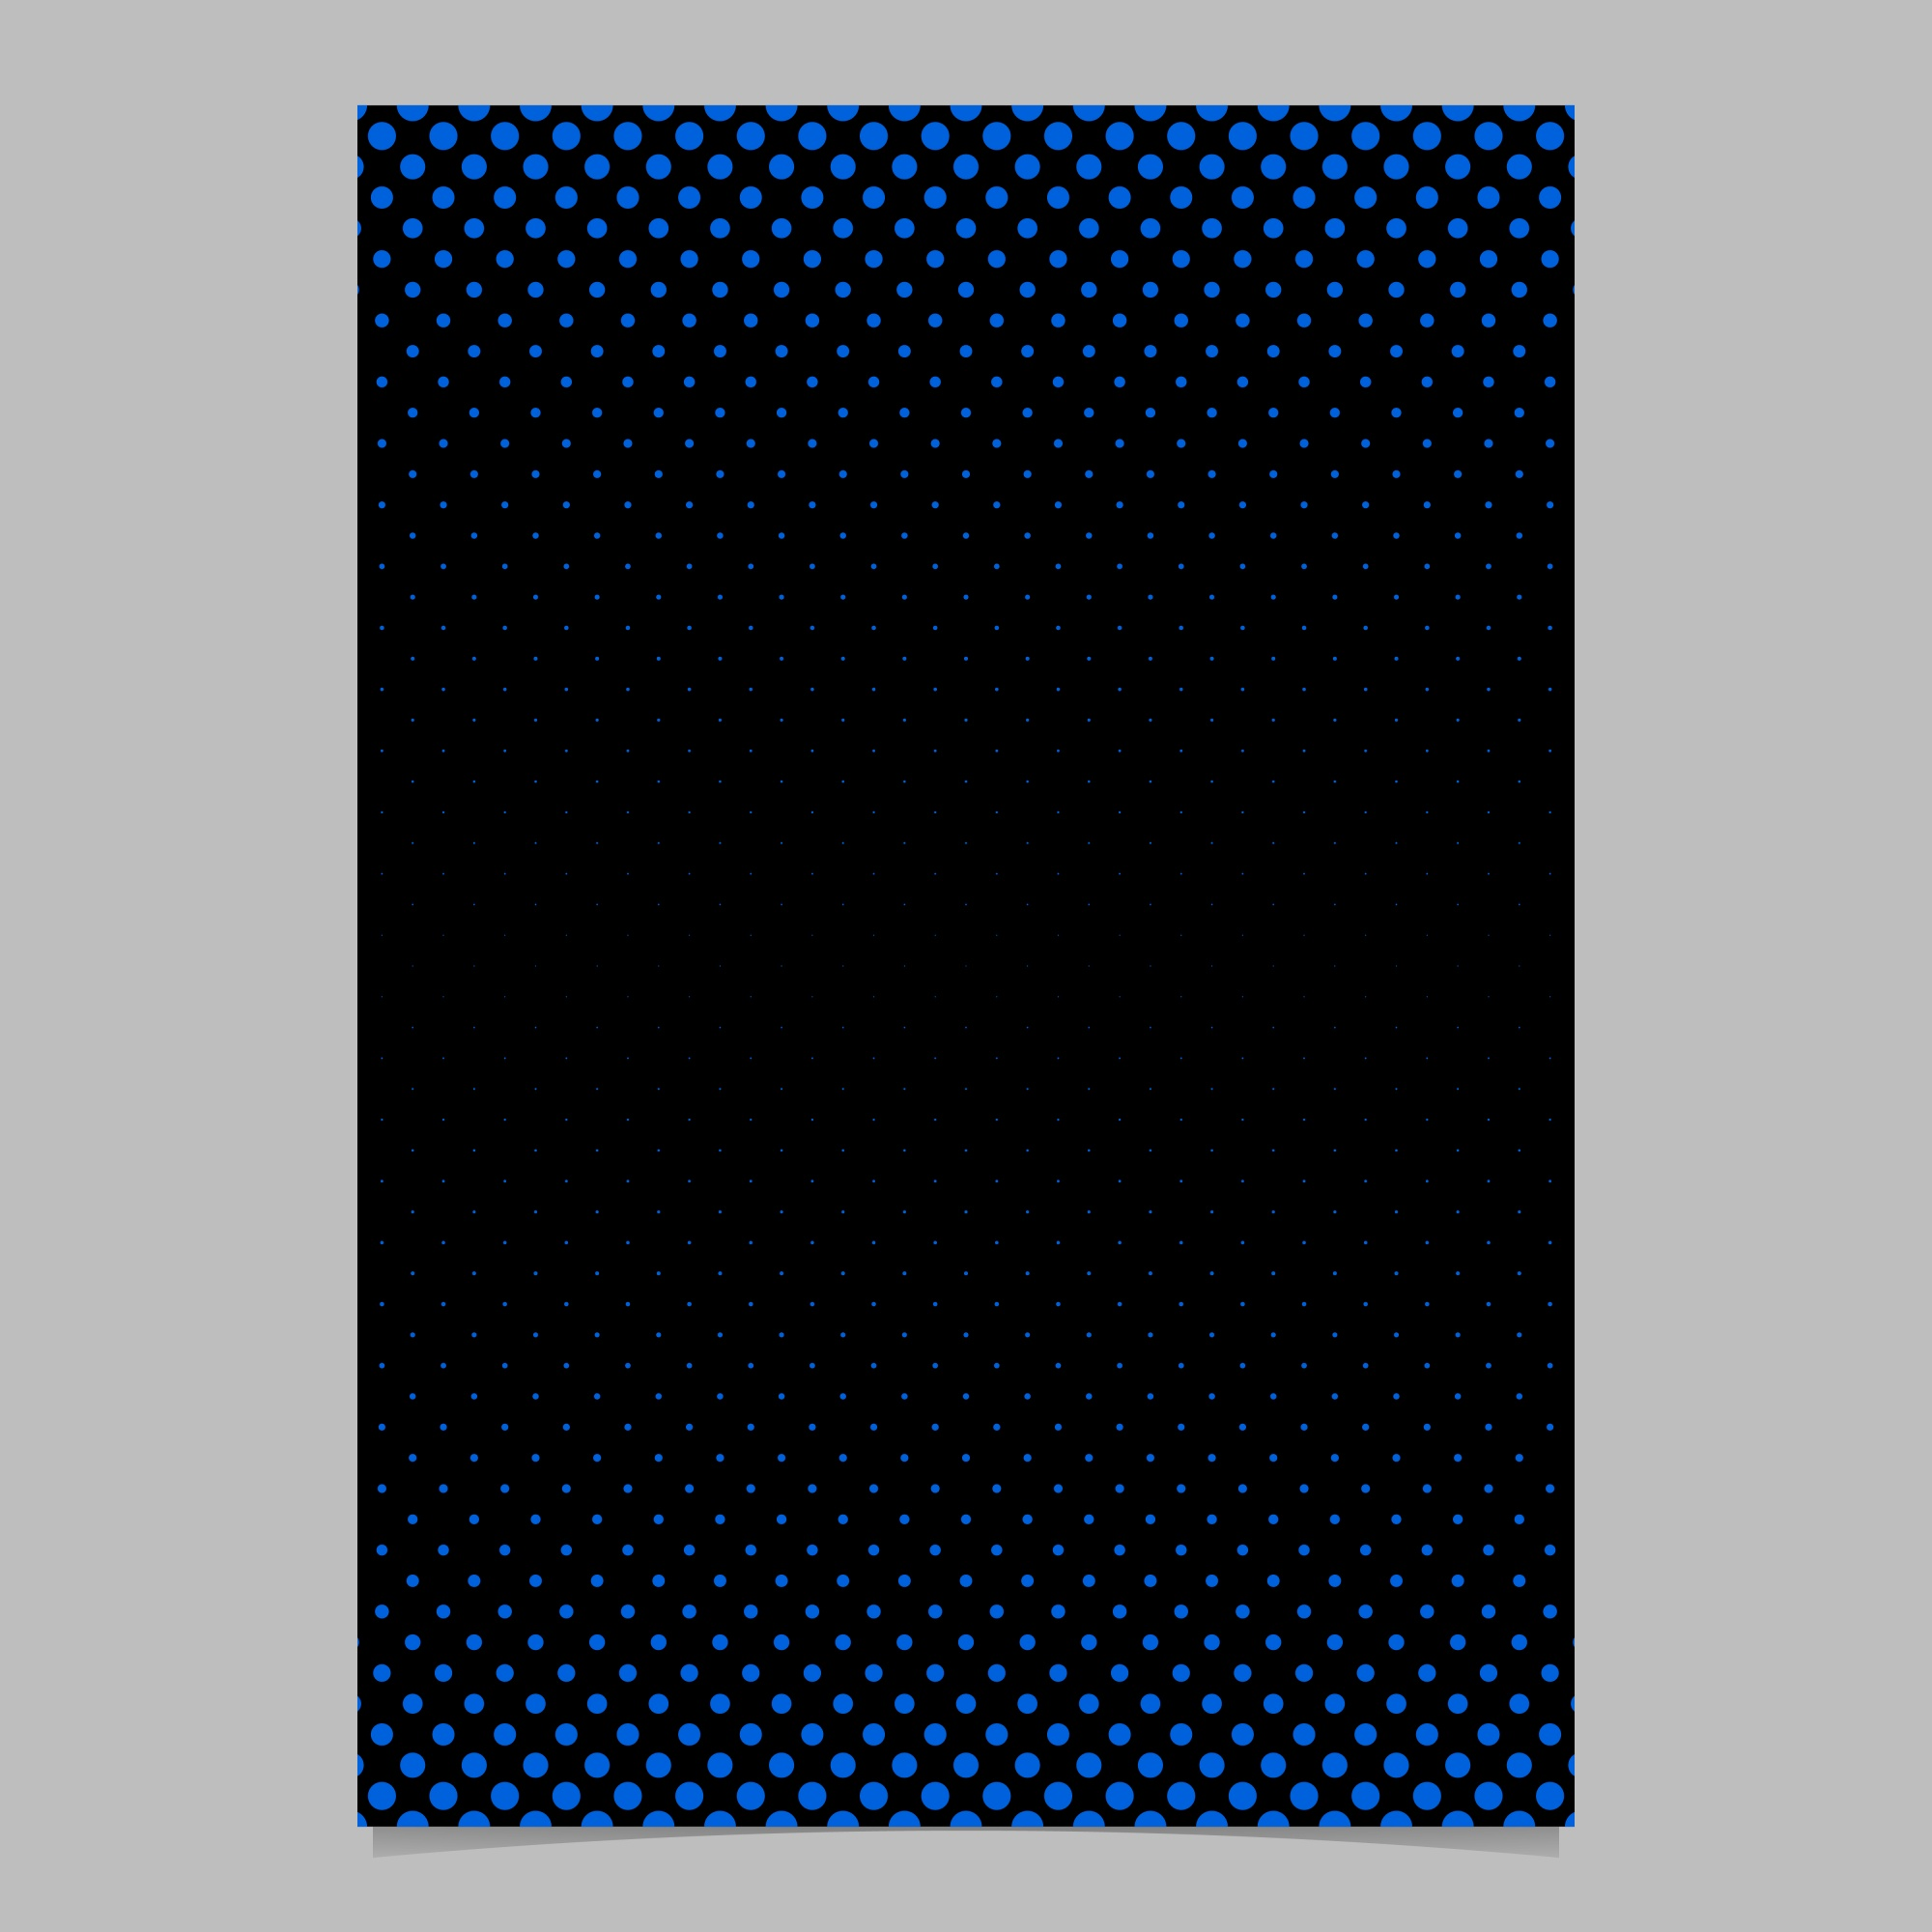 Abstract simple halftone dot pattern cover template - vector flyer background design with circle pattern